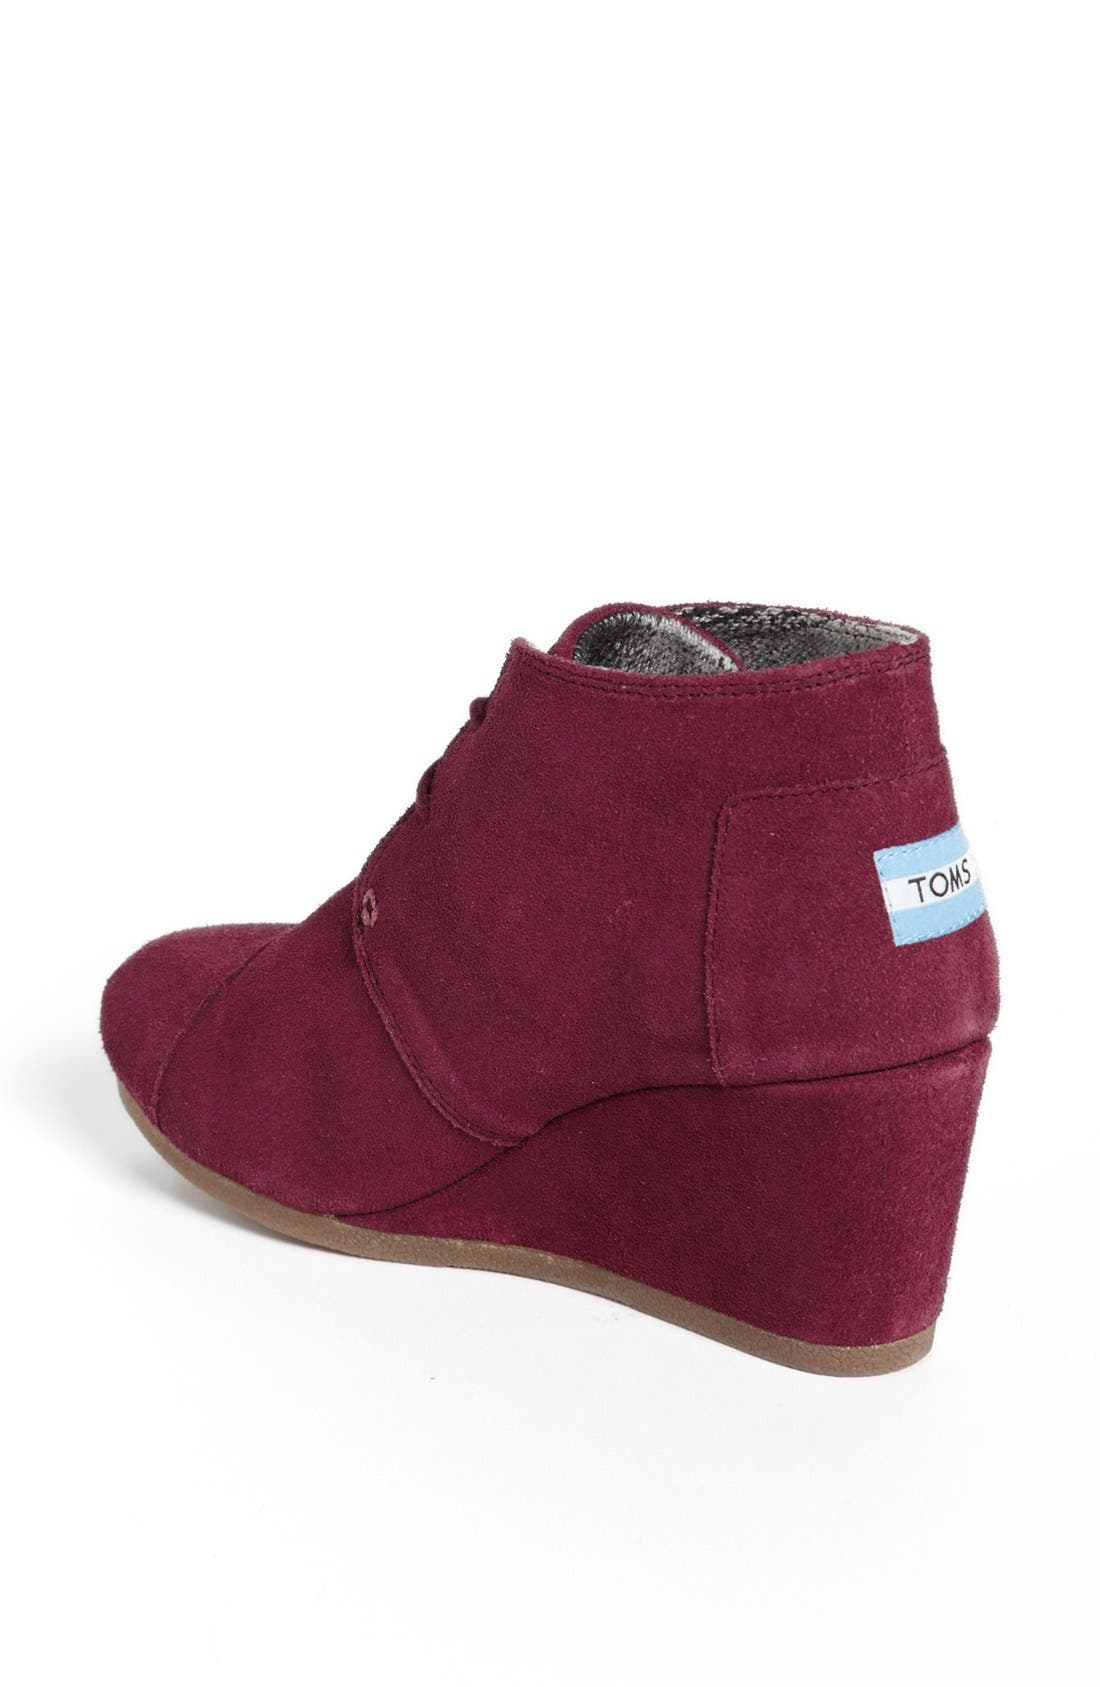 Alternate Image 3  - TOMS 'Desert' Wedge Bootie